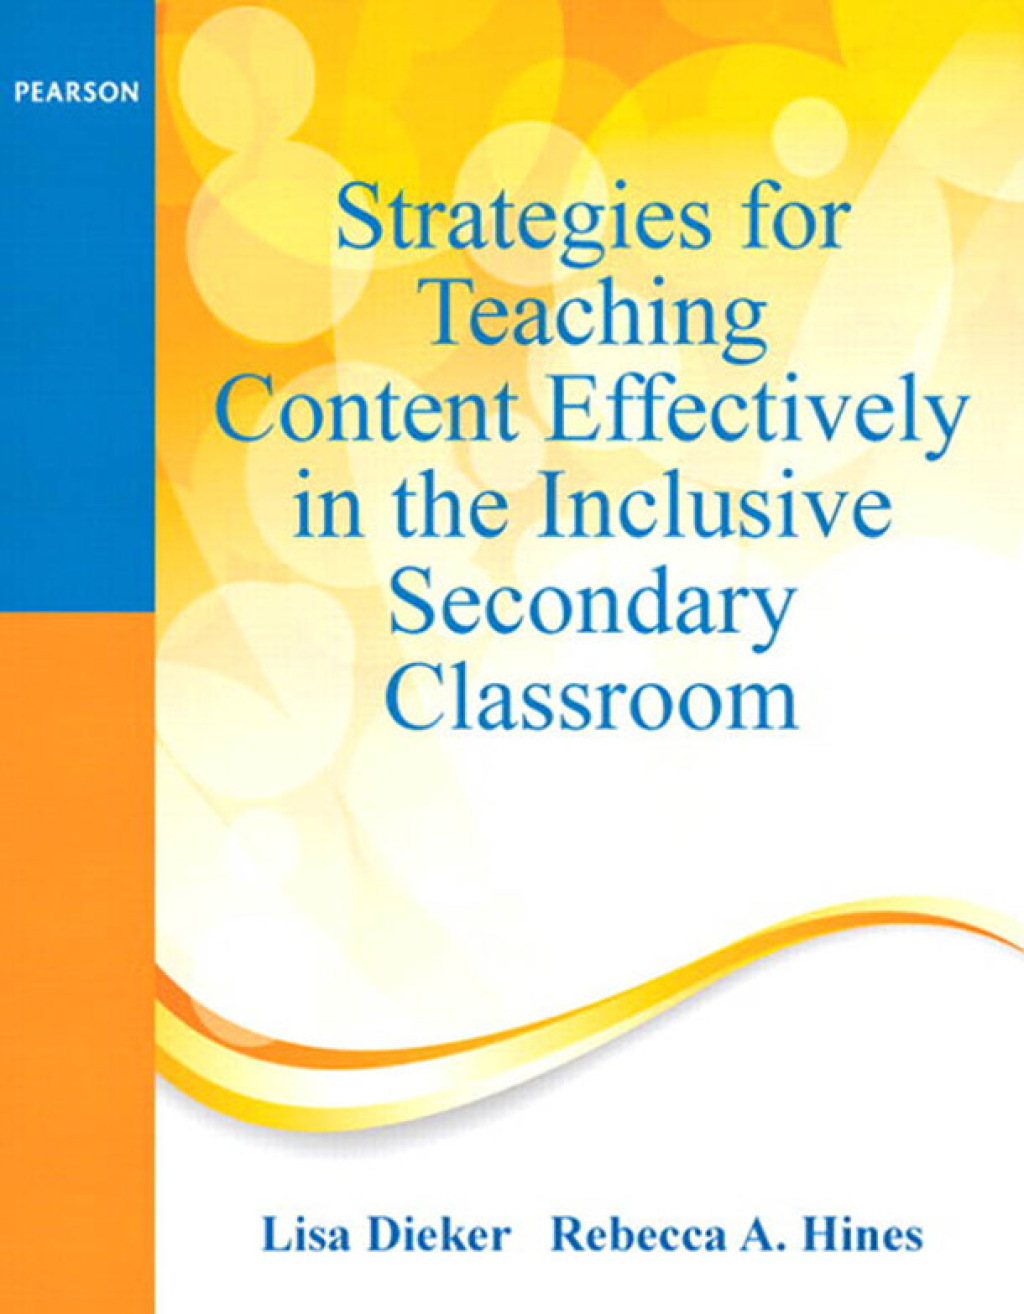 Strategies for Teaching Content Effectively in the Inclusive Secondary Classroom (ebook) eBooks